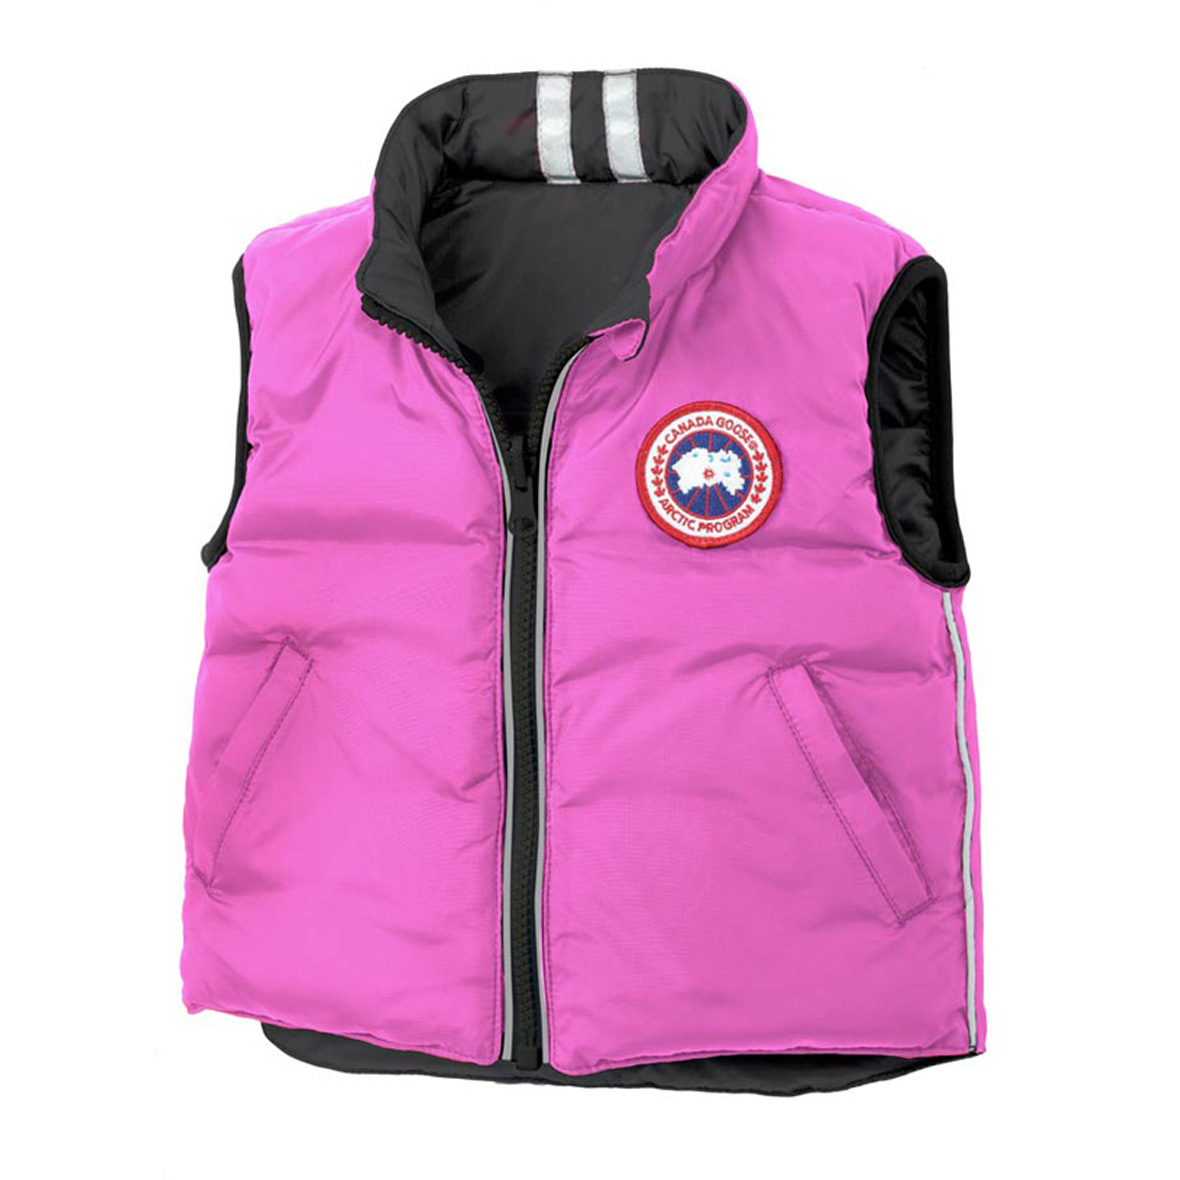 Canada Goose Infants [0M-12M] Cub Reversible Vest SUMMIT PINK BLACK